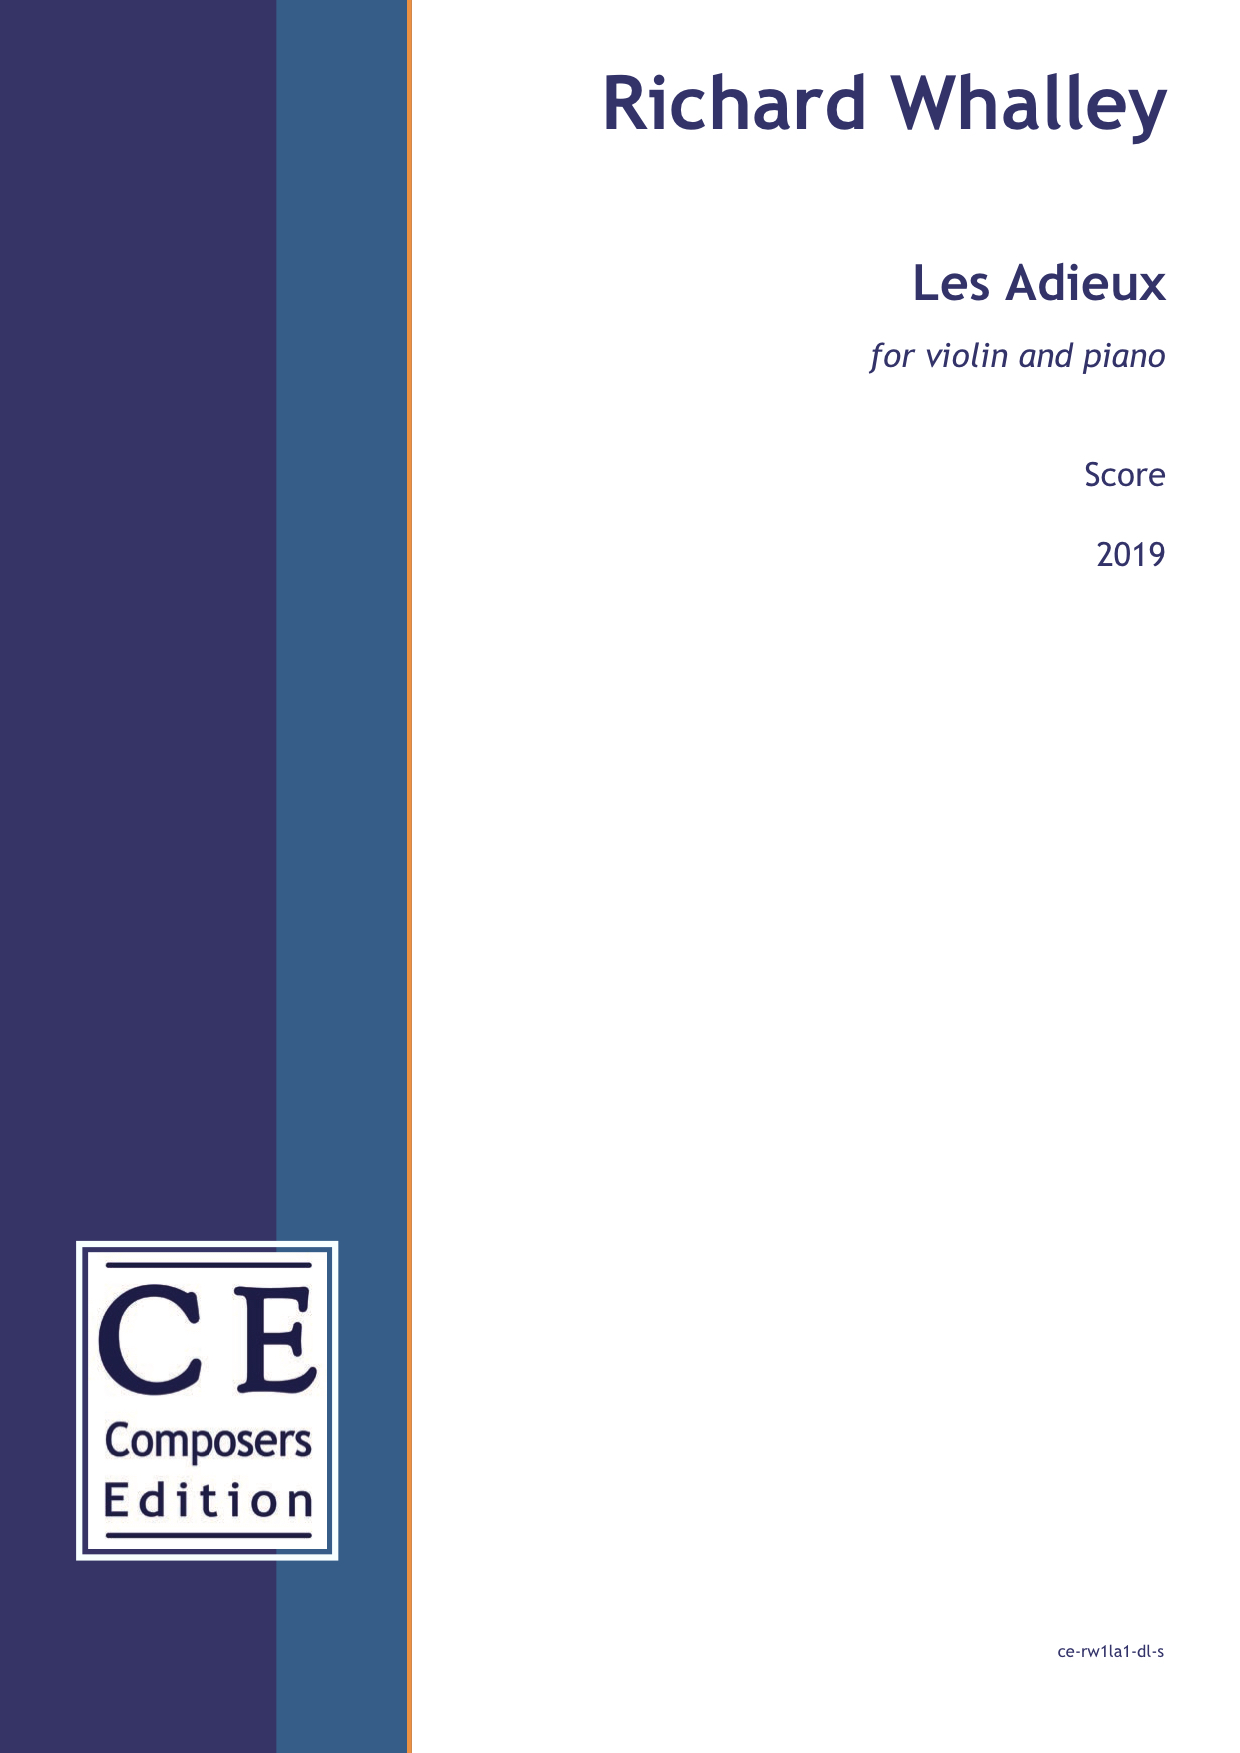 Richard Whalley: Les Adieux for violin and piano